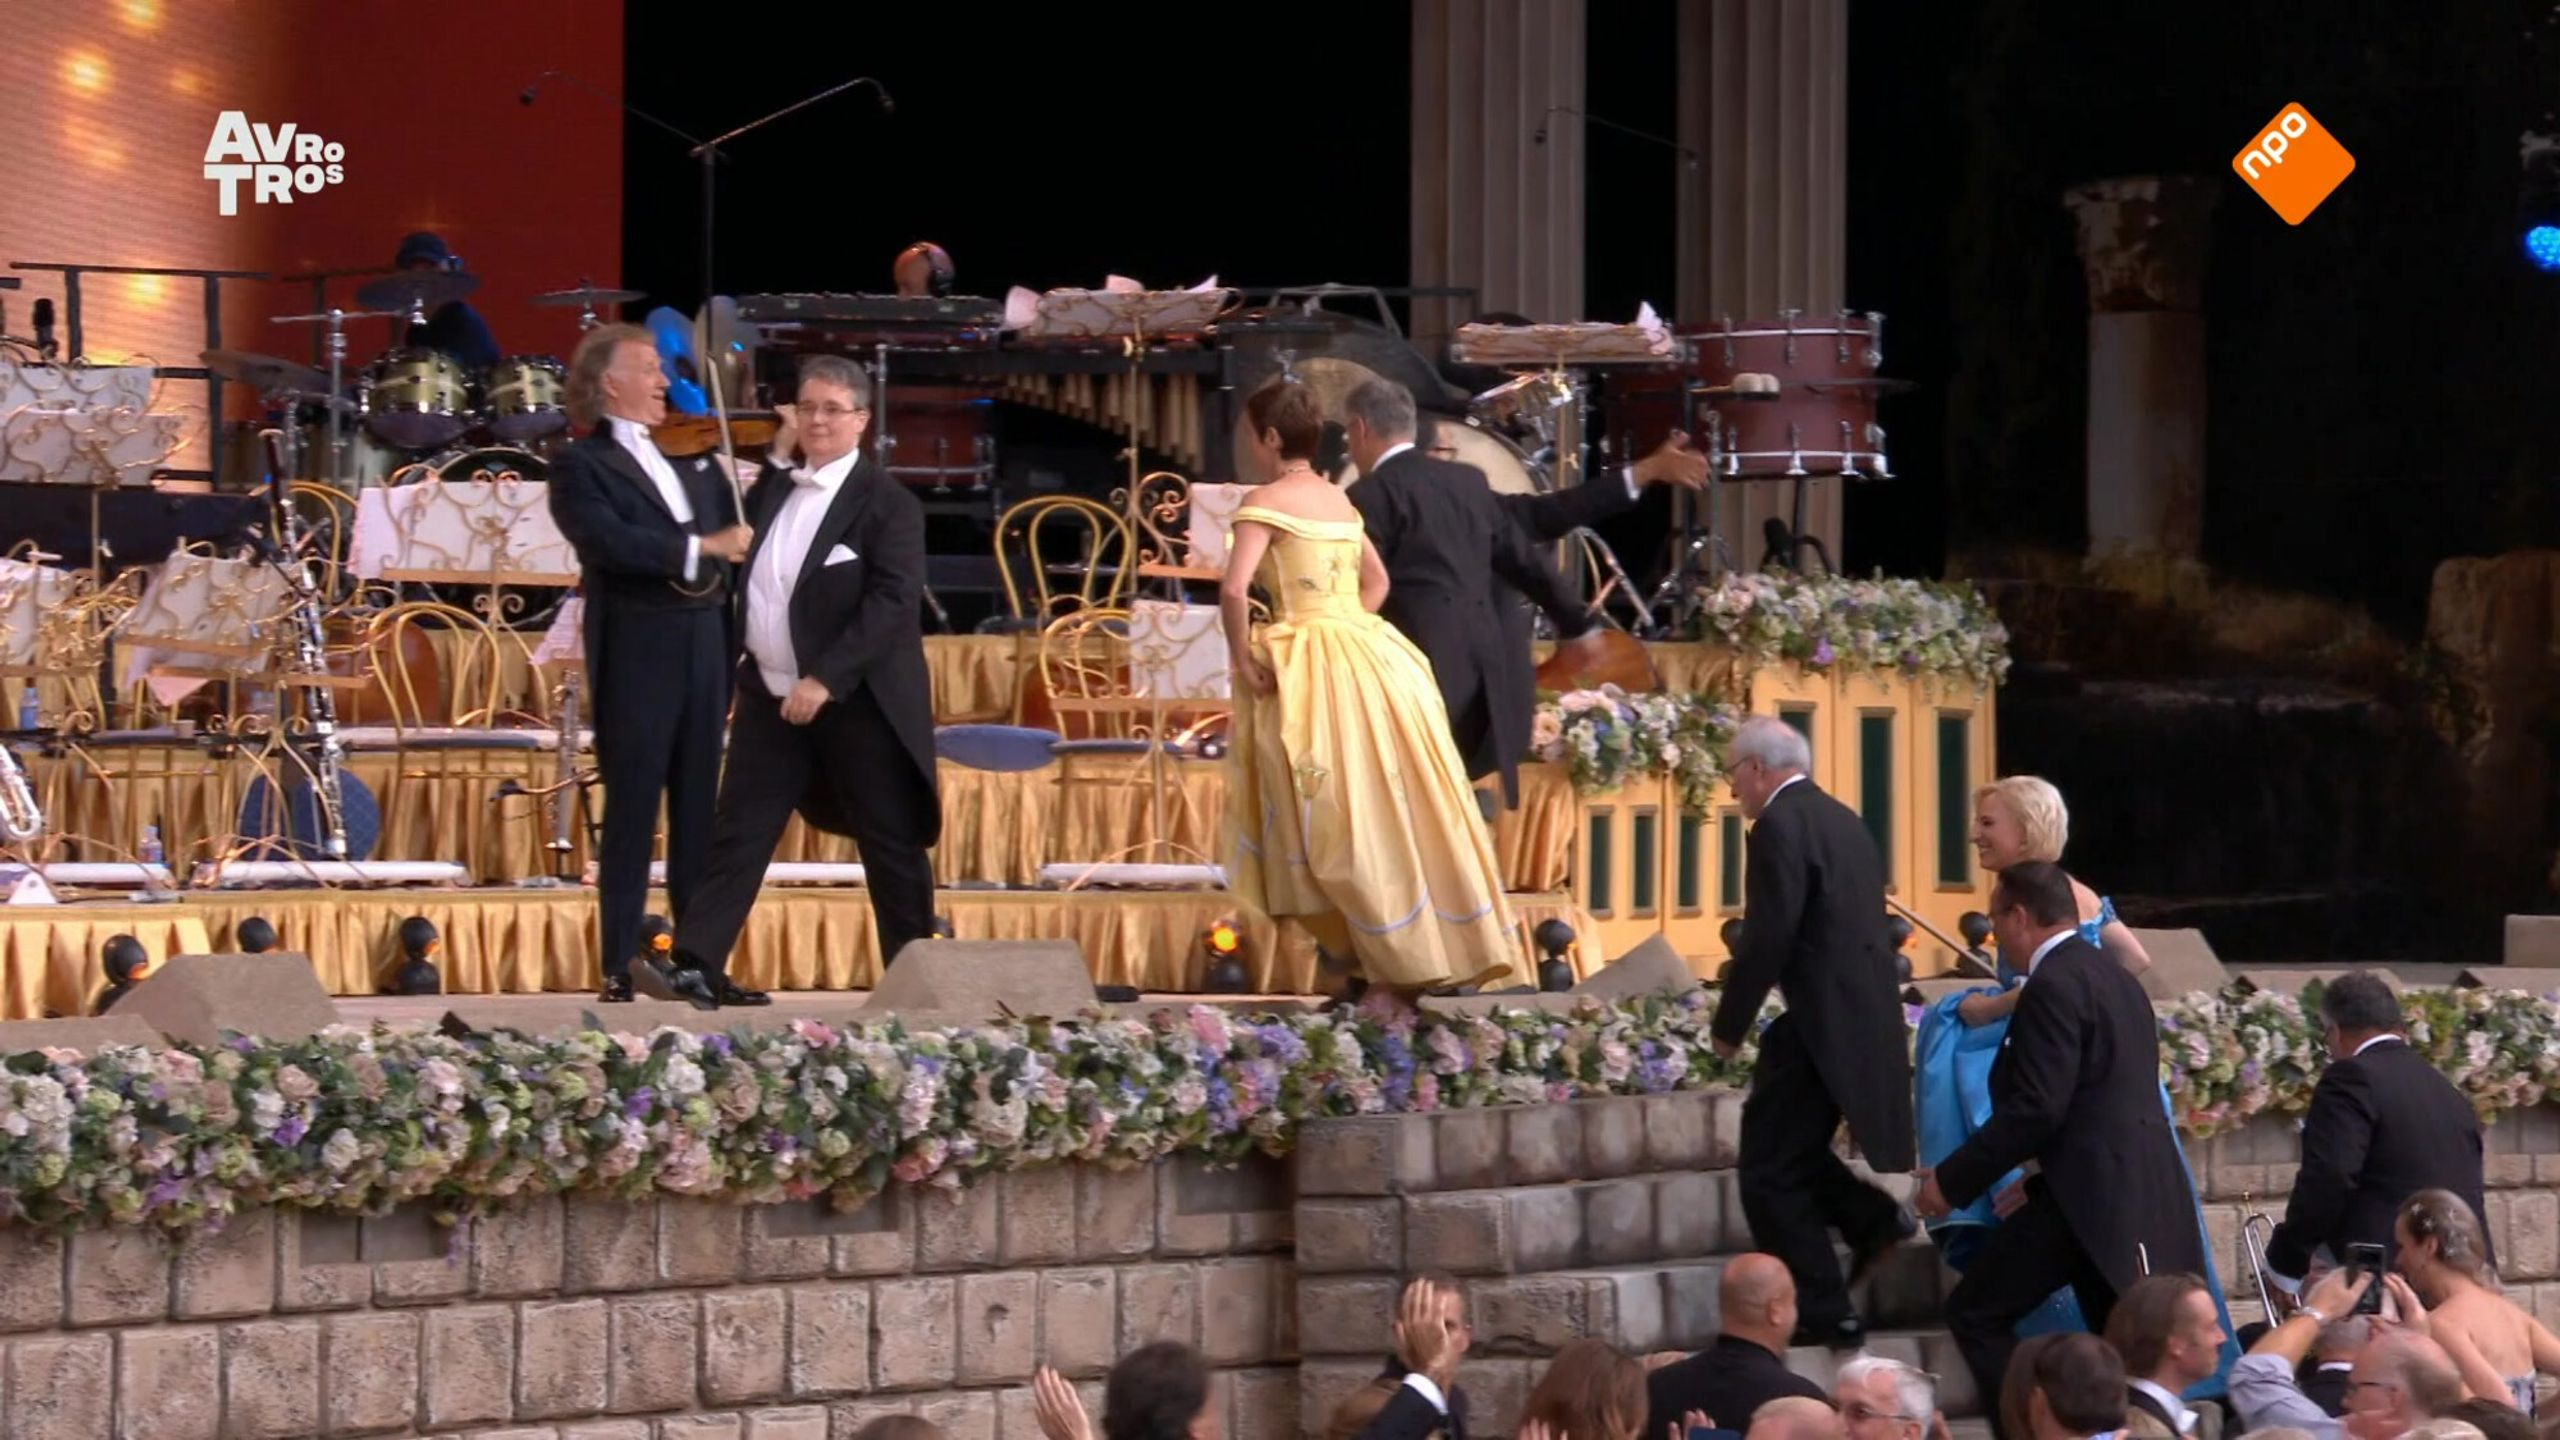 André Rieu, there's a new tomorrow